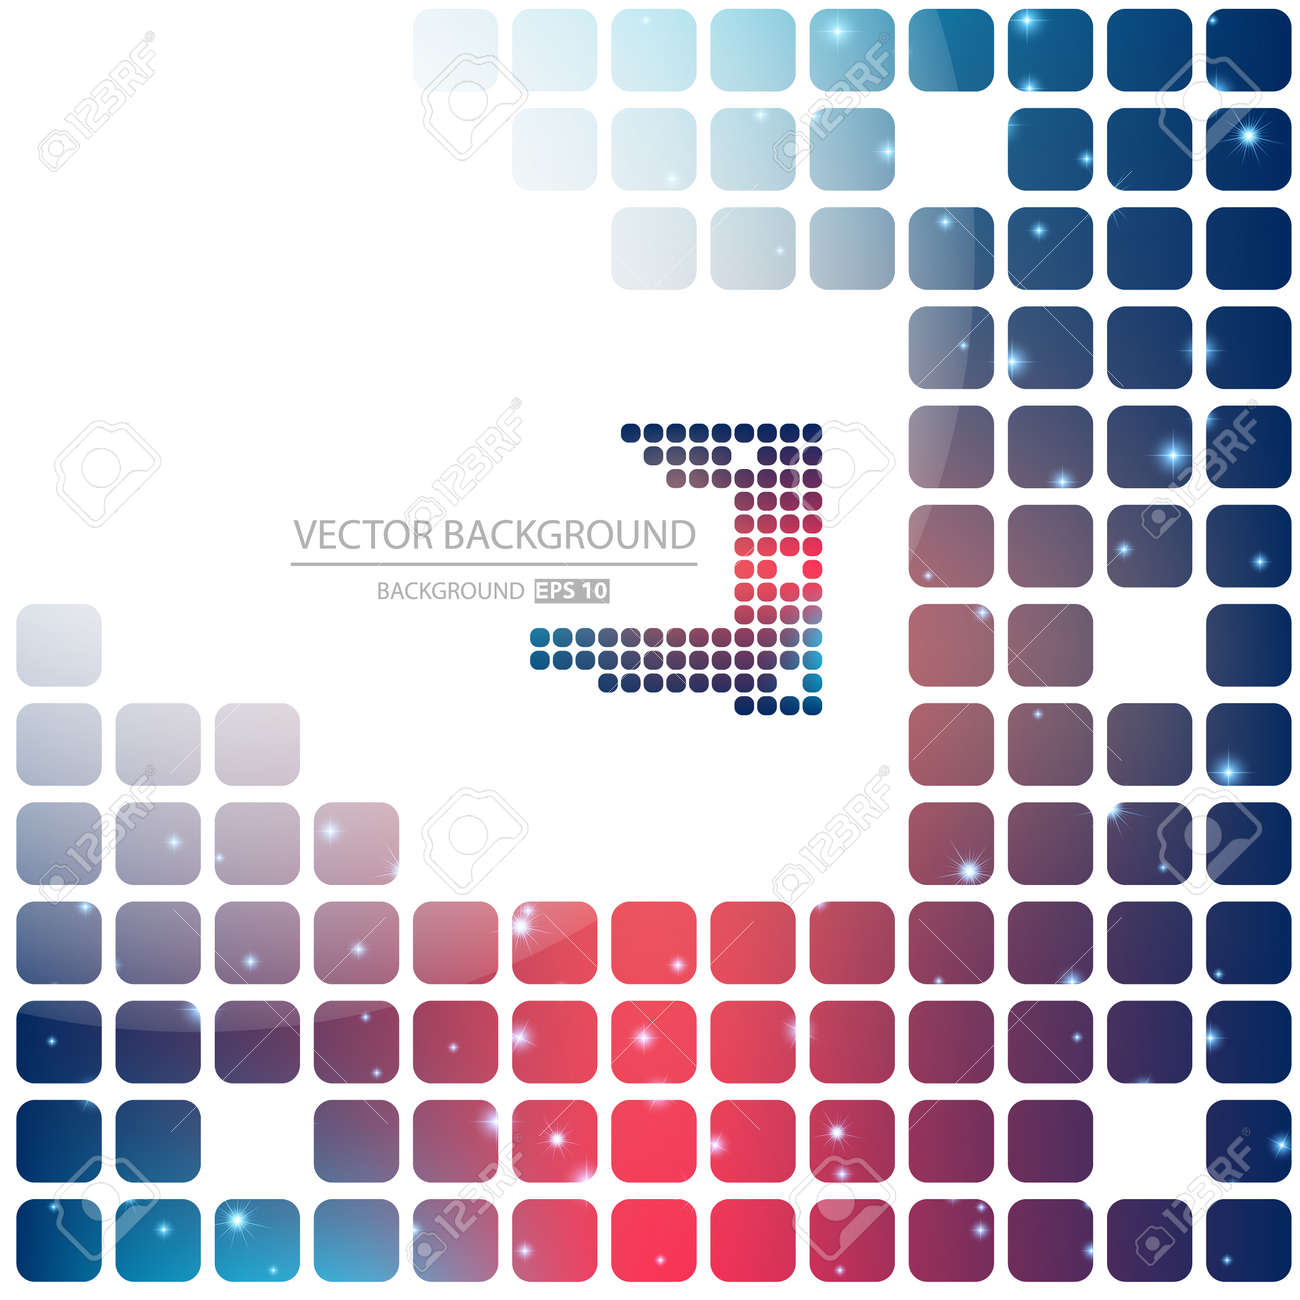 Vector Background For Web Art Page Design Plan Card Style Print